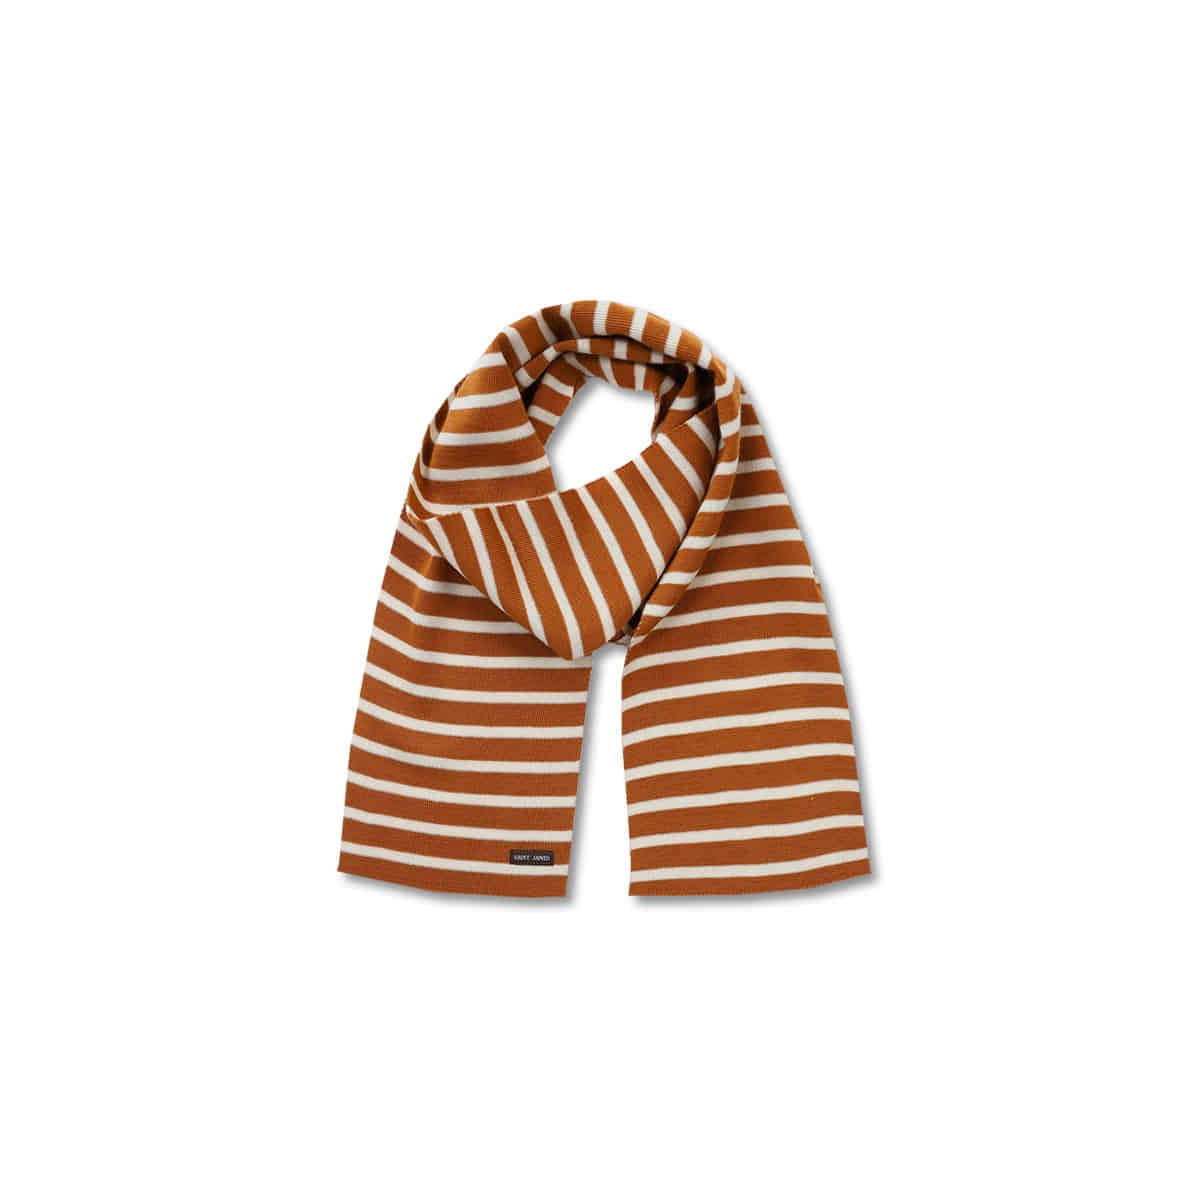 [SAINT JAMES] SCARF RAYE 'CAMEL/ECRU'